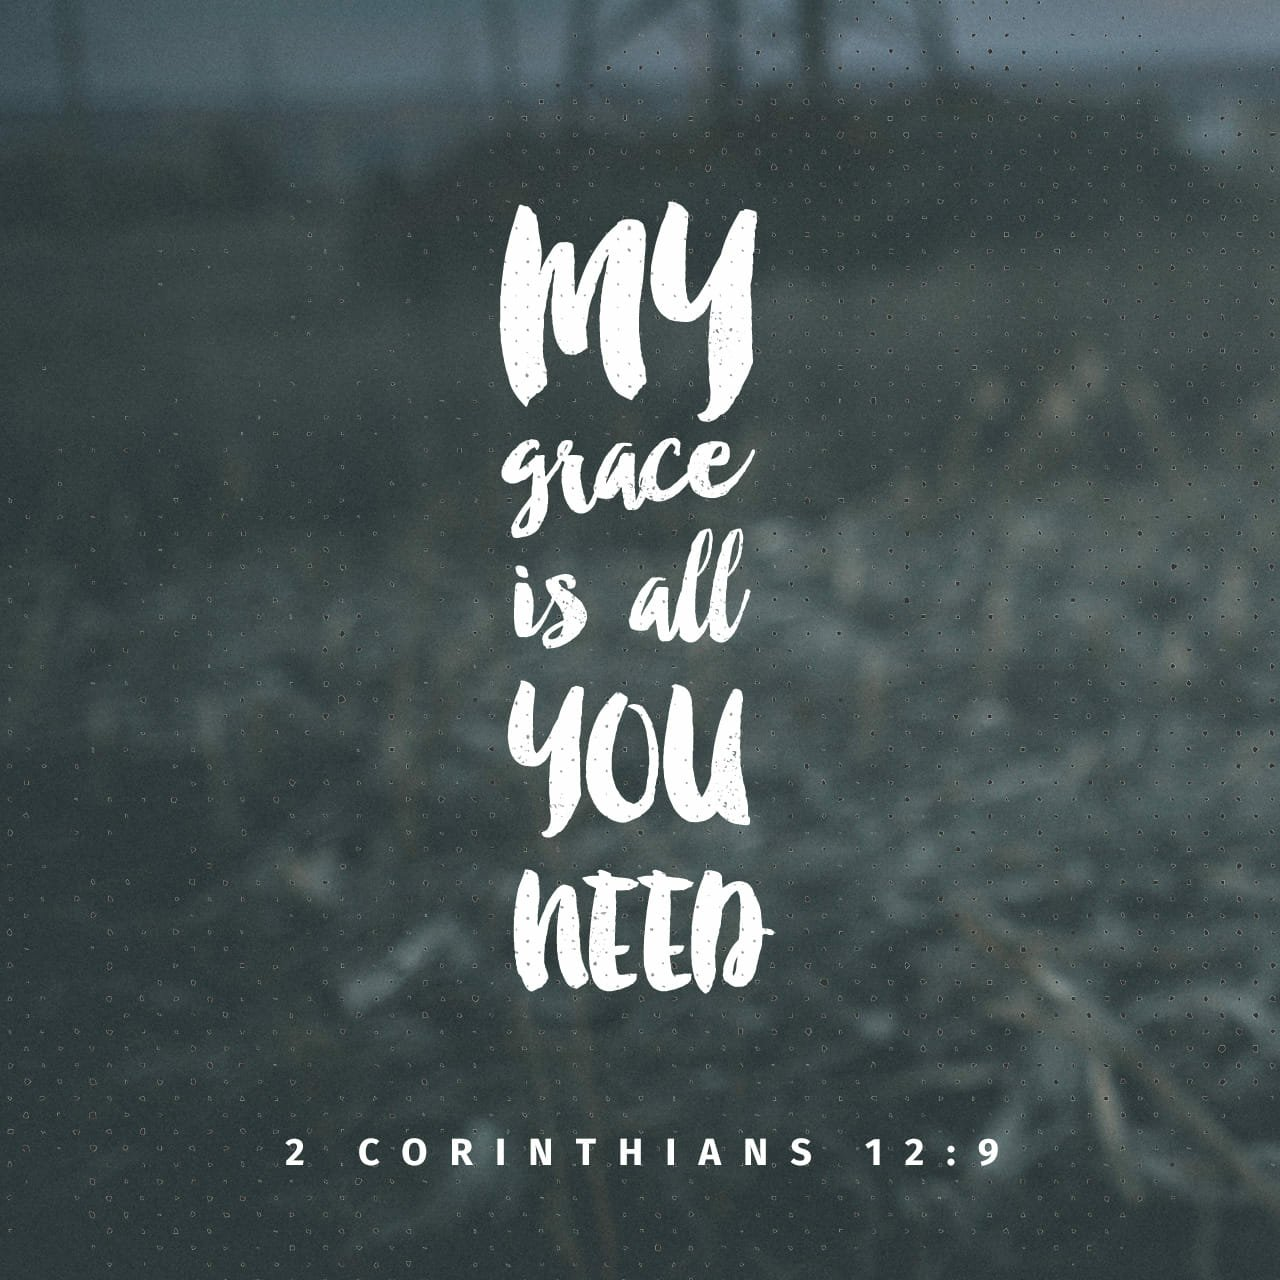 A Prayer for God's Grace